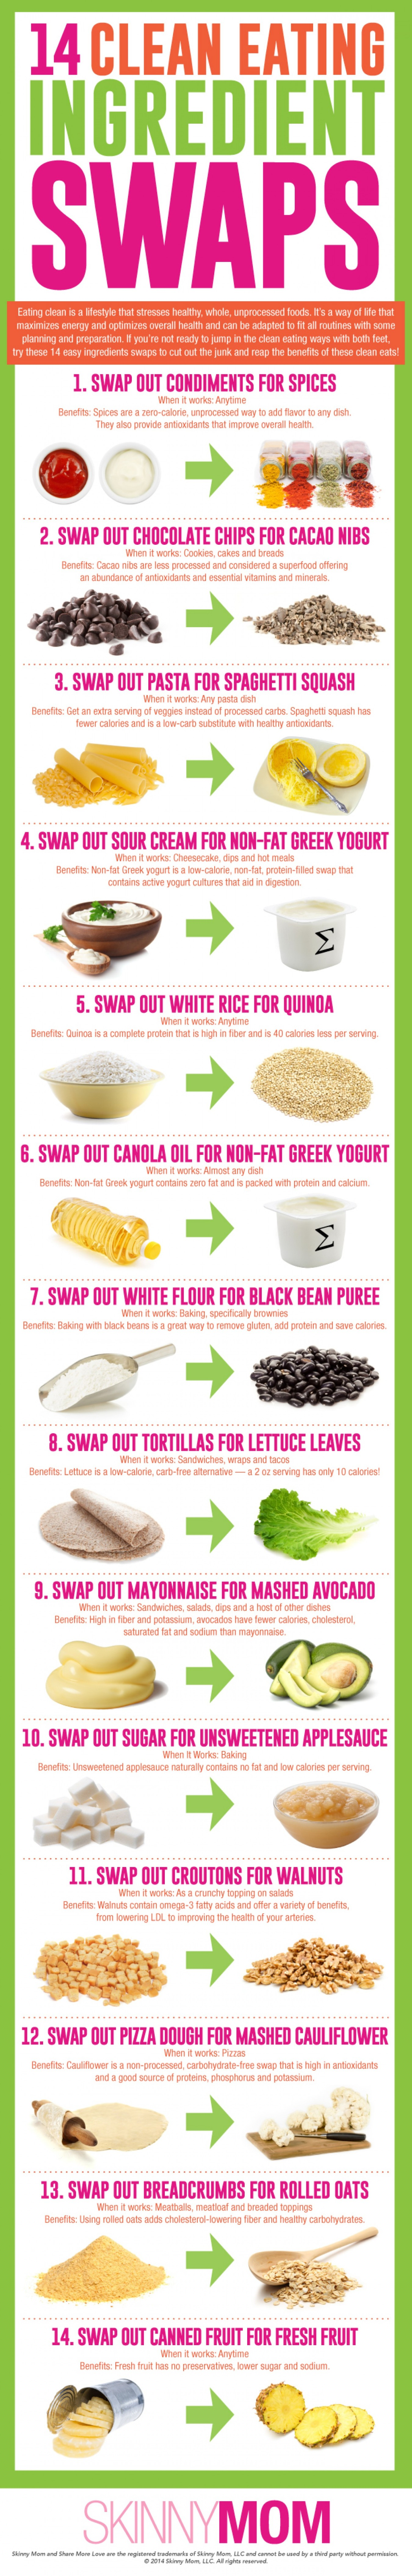 01 14CleanEatingIngredientSwaps_532b4332e8014_w1500